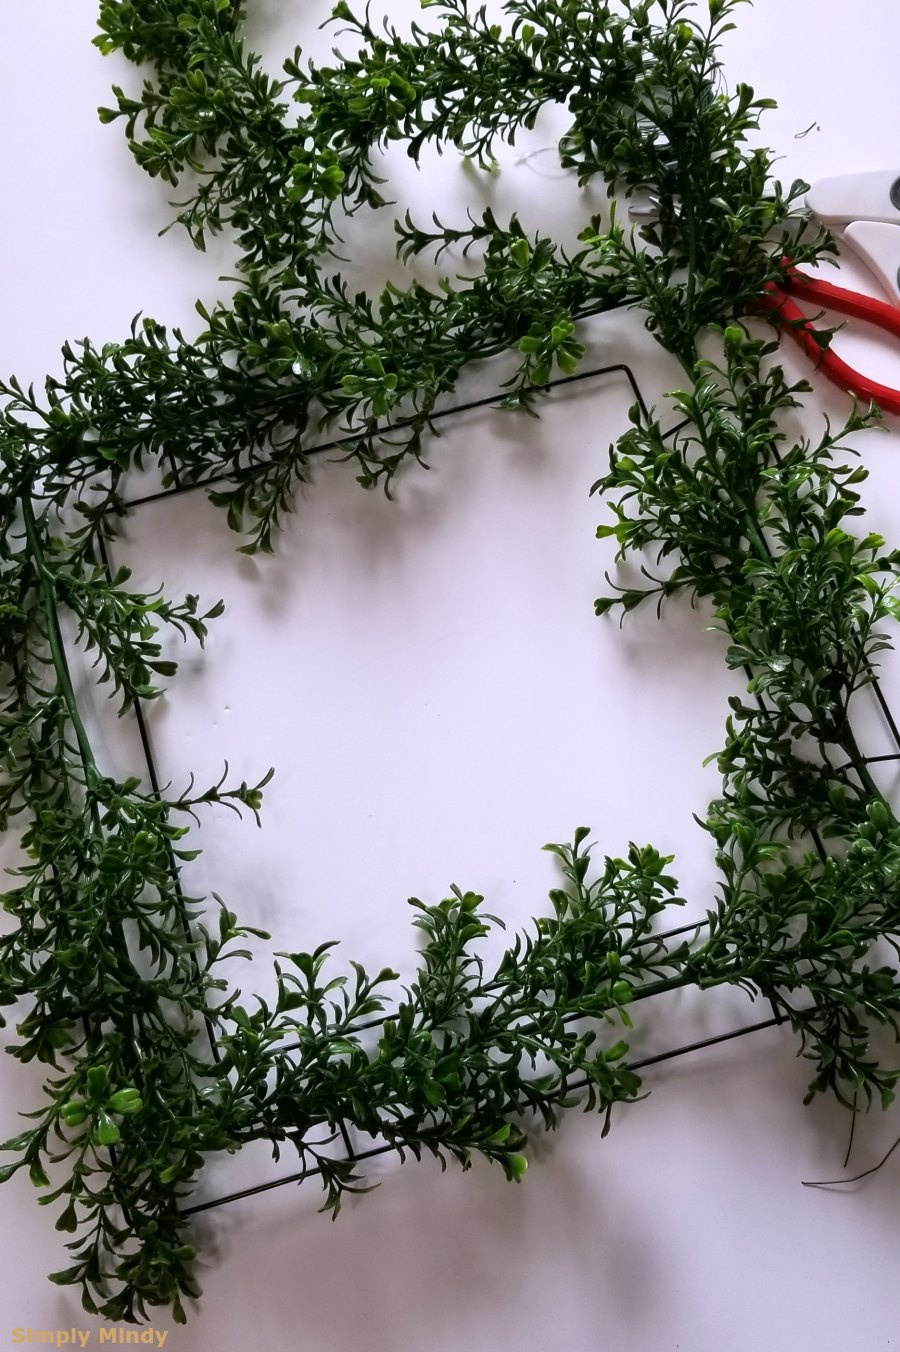 This is what it looked like after the first garland was attached.